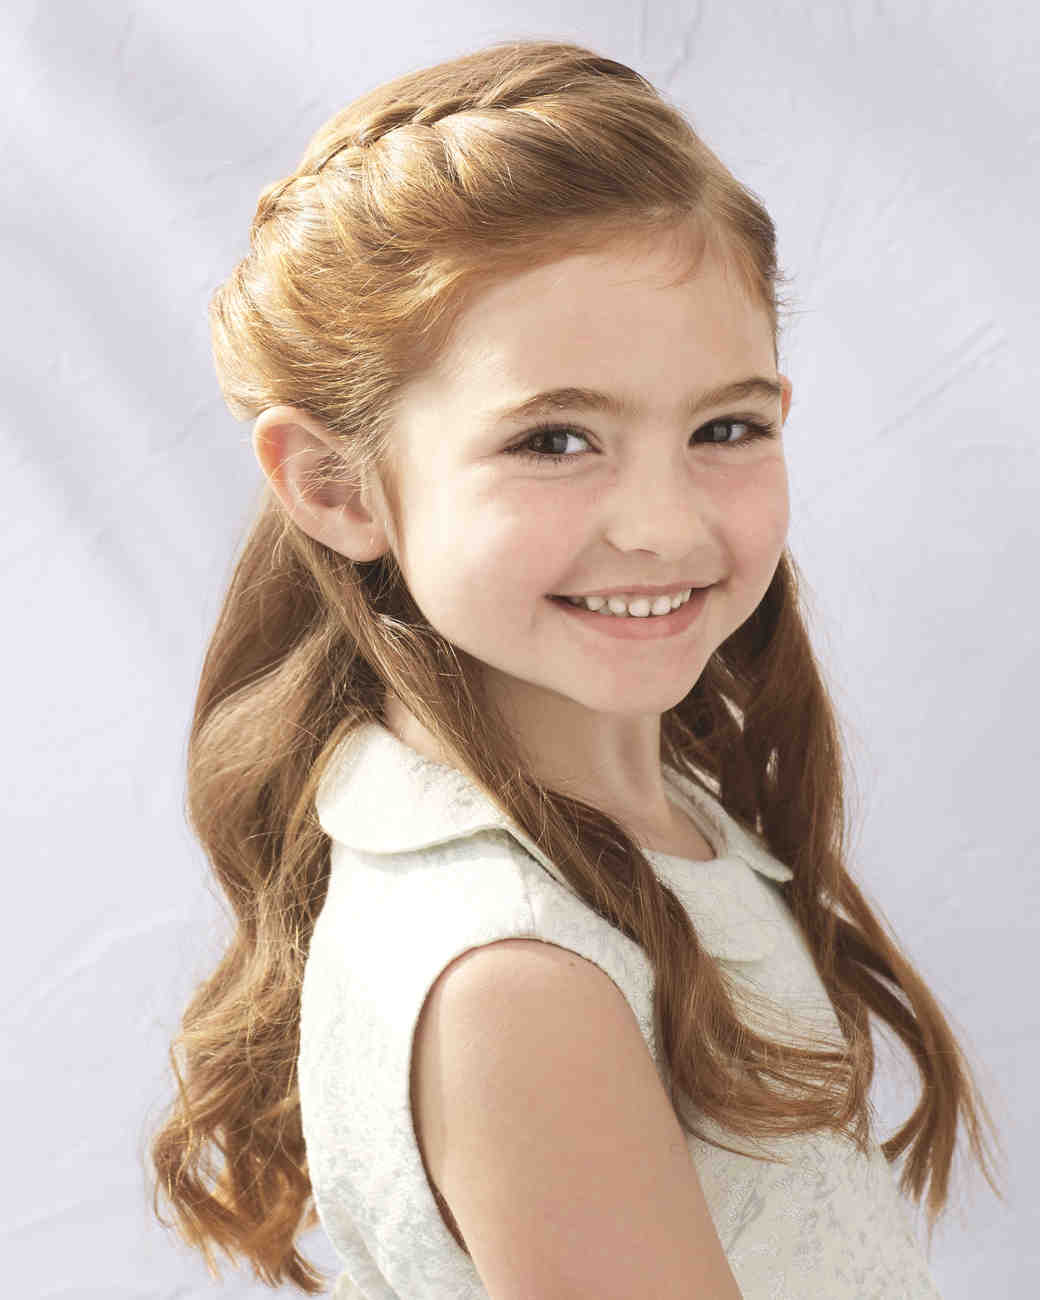 flower girl hairstyles that are cute and comfy | martha stewart